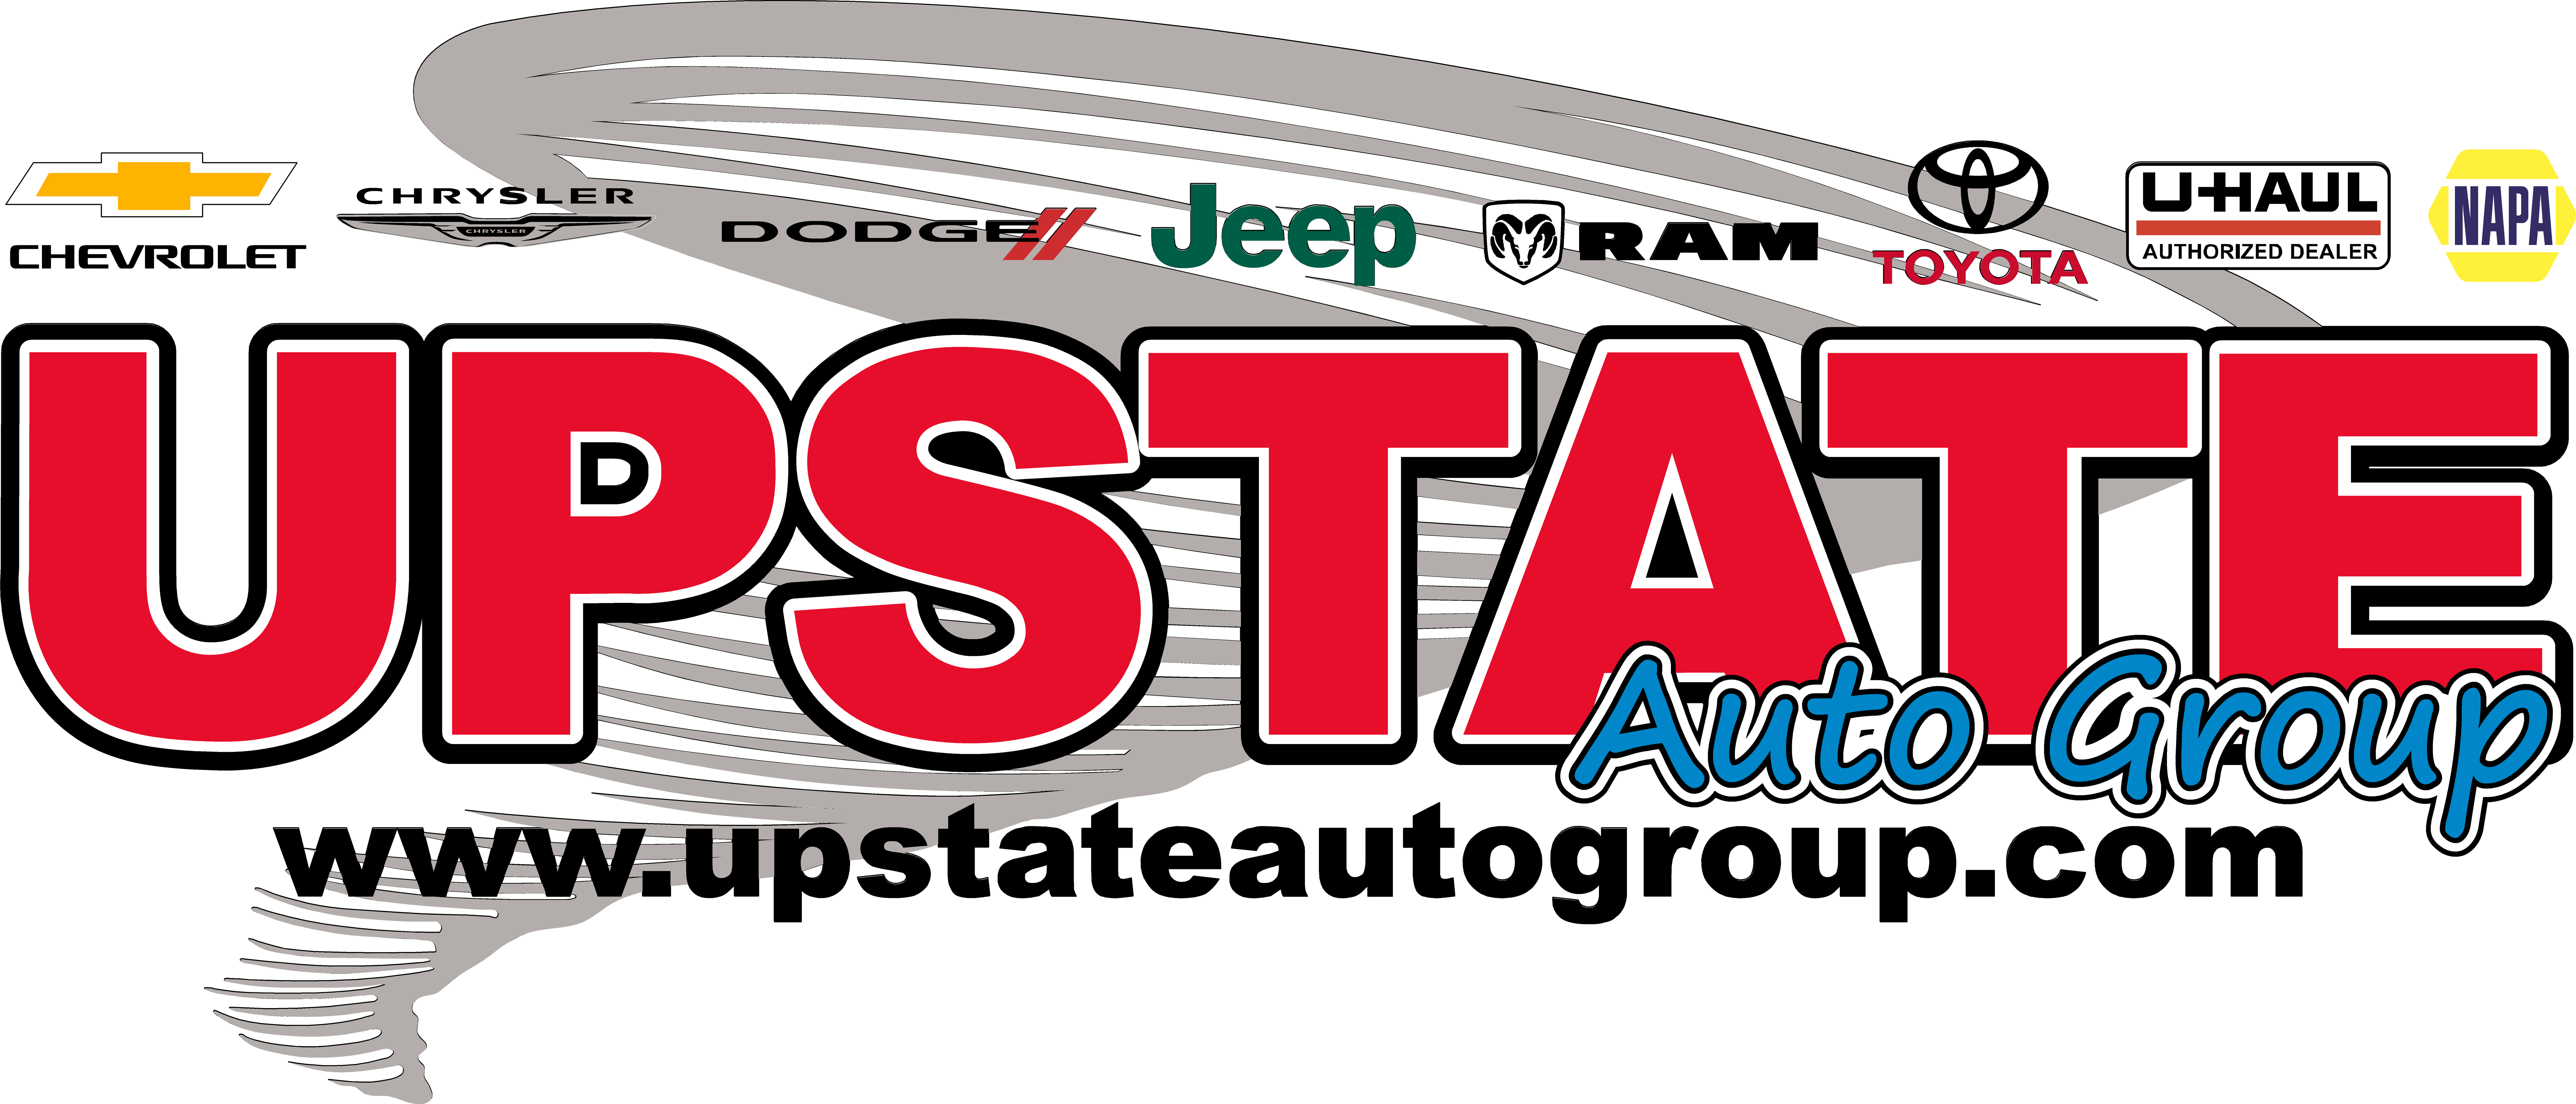 Upstate Automotive Group